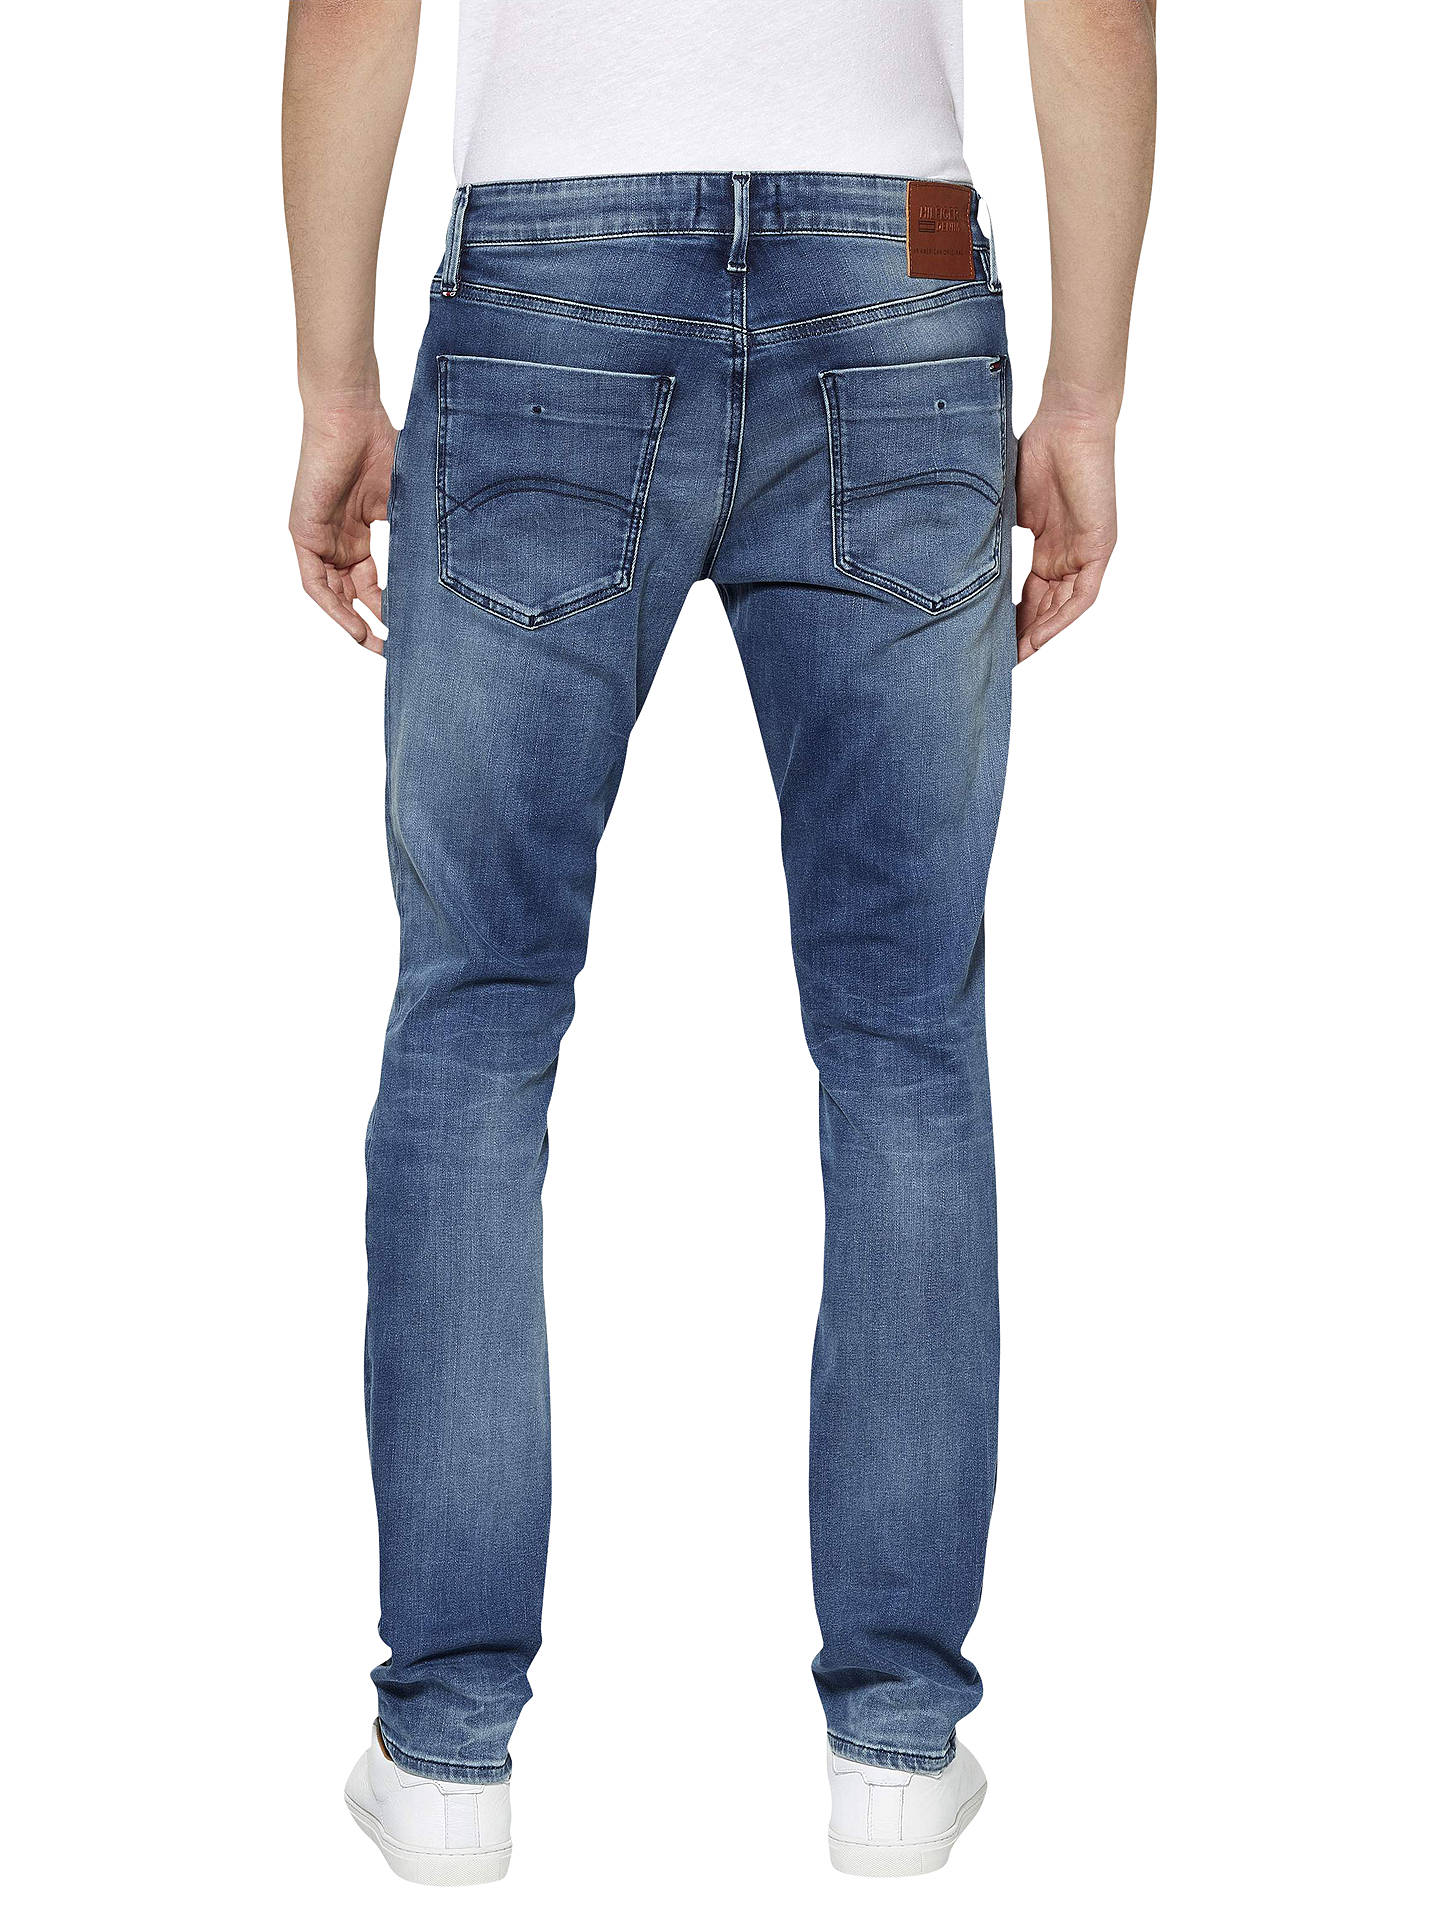 fbaeaca06 ... Buy Tommy Jeans Dynamic Stretch Scanton Slim Fit Jeans, Faded Blue, 32S  Online at